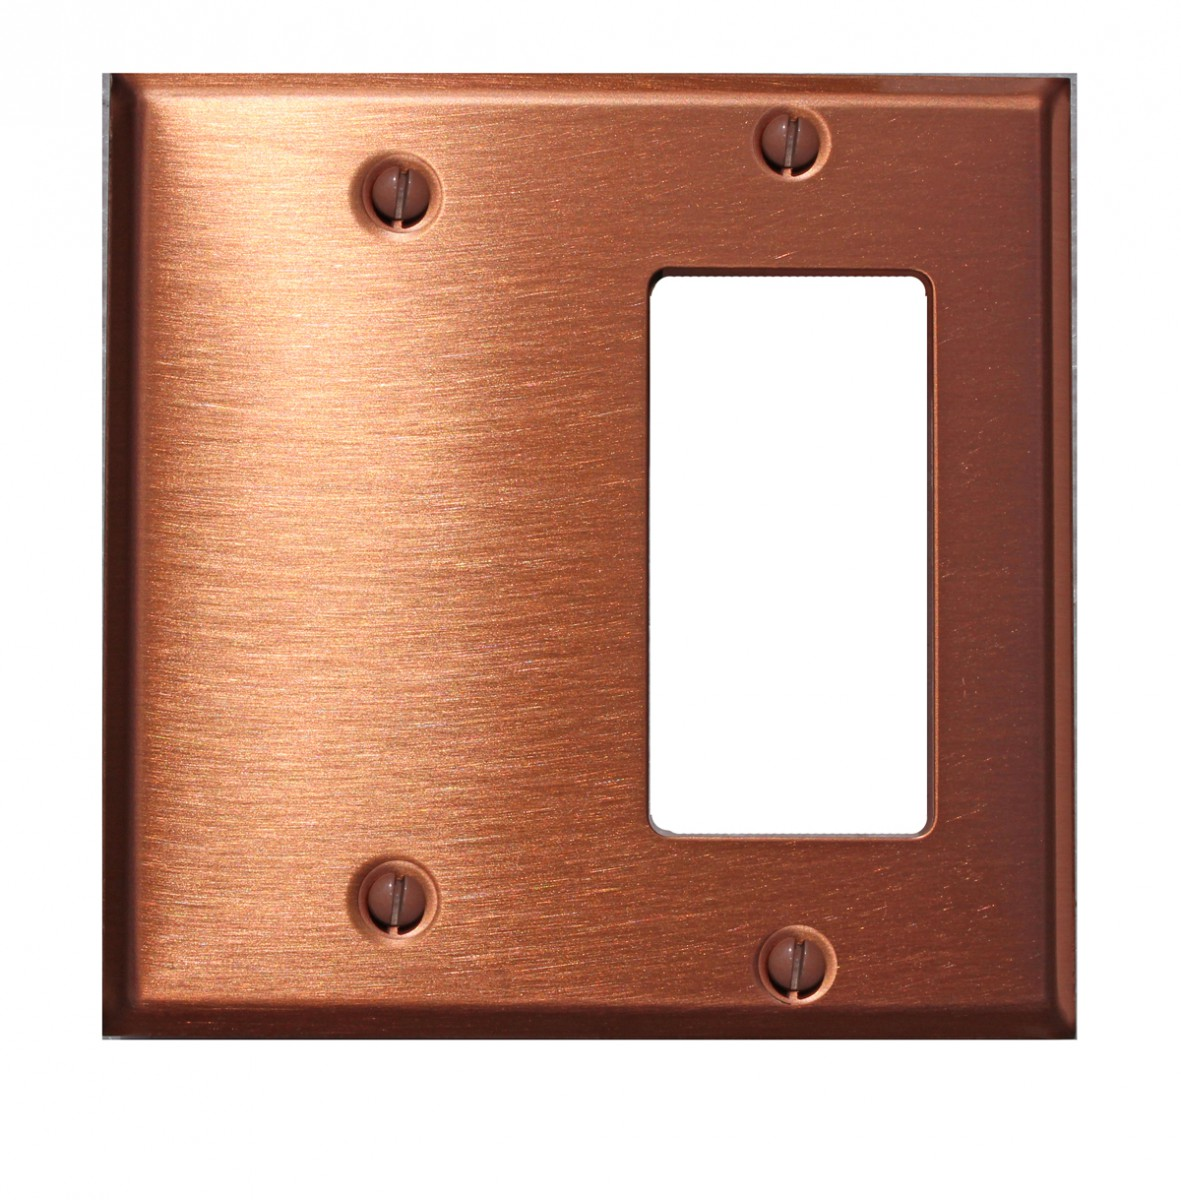 Switchplate Brushed Solid Copper Gfi Blank